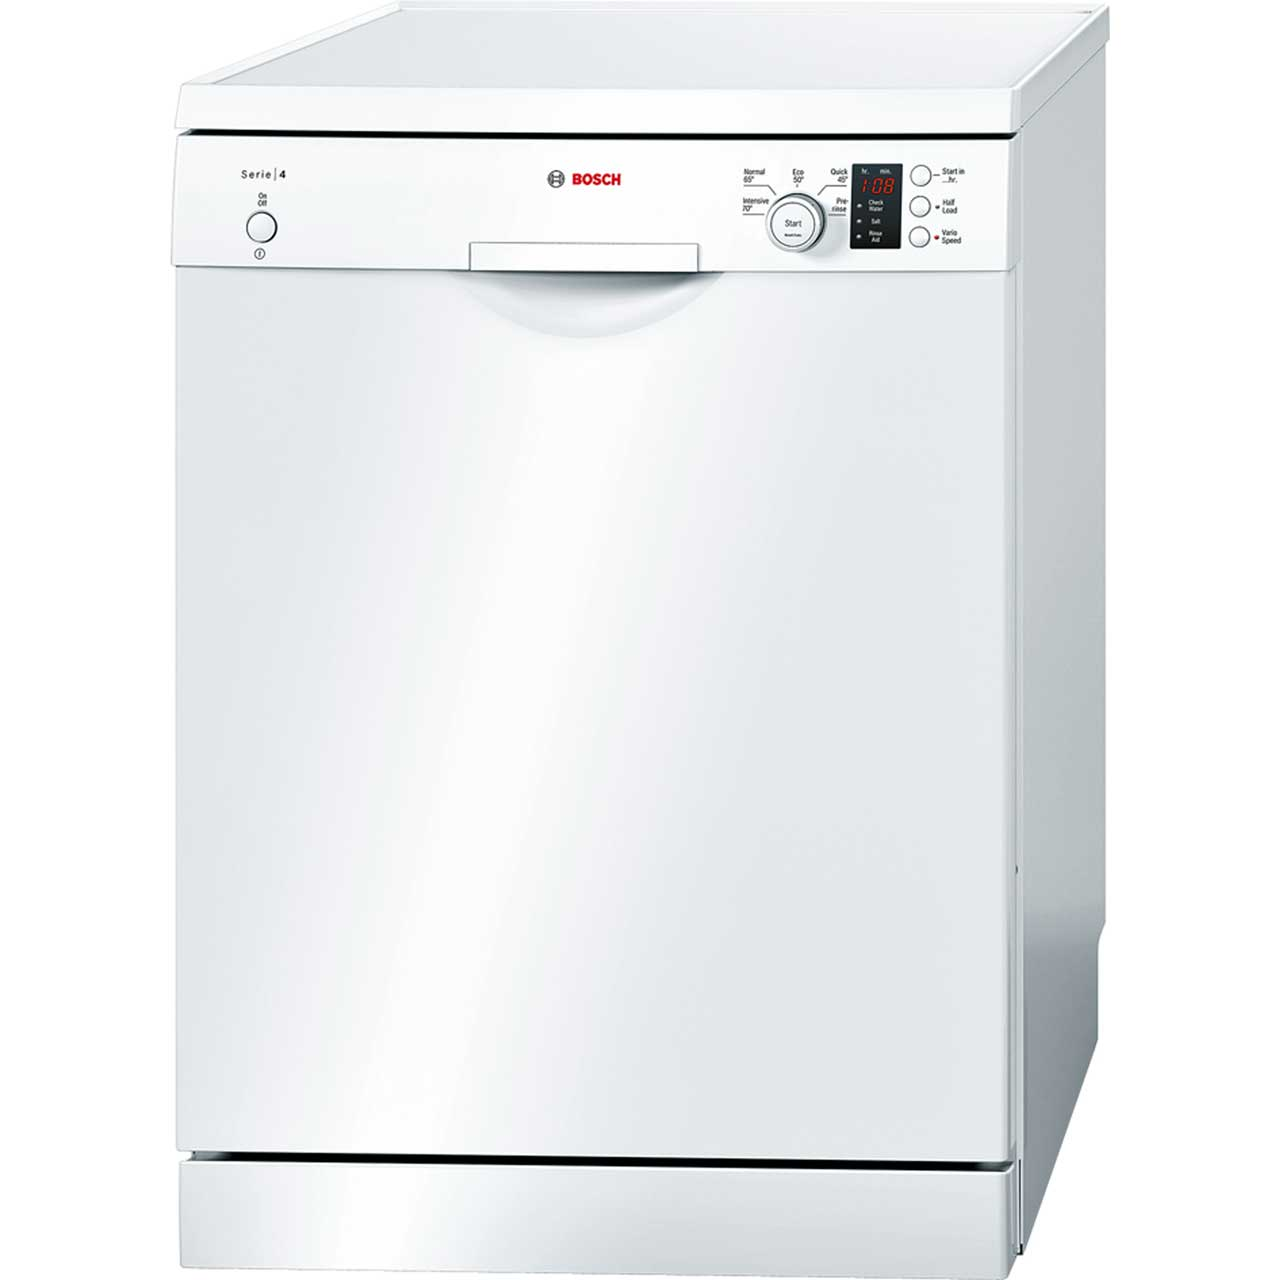 bosch serie 4 sms50c22gb standard dishwasher white 96927. Black Bedroom Furniture Sets. Home Design Ideas